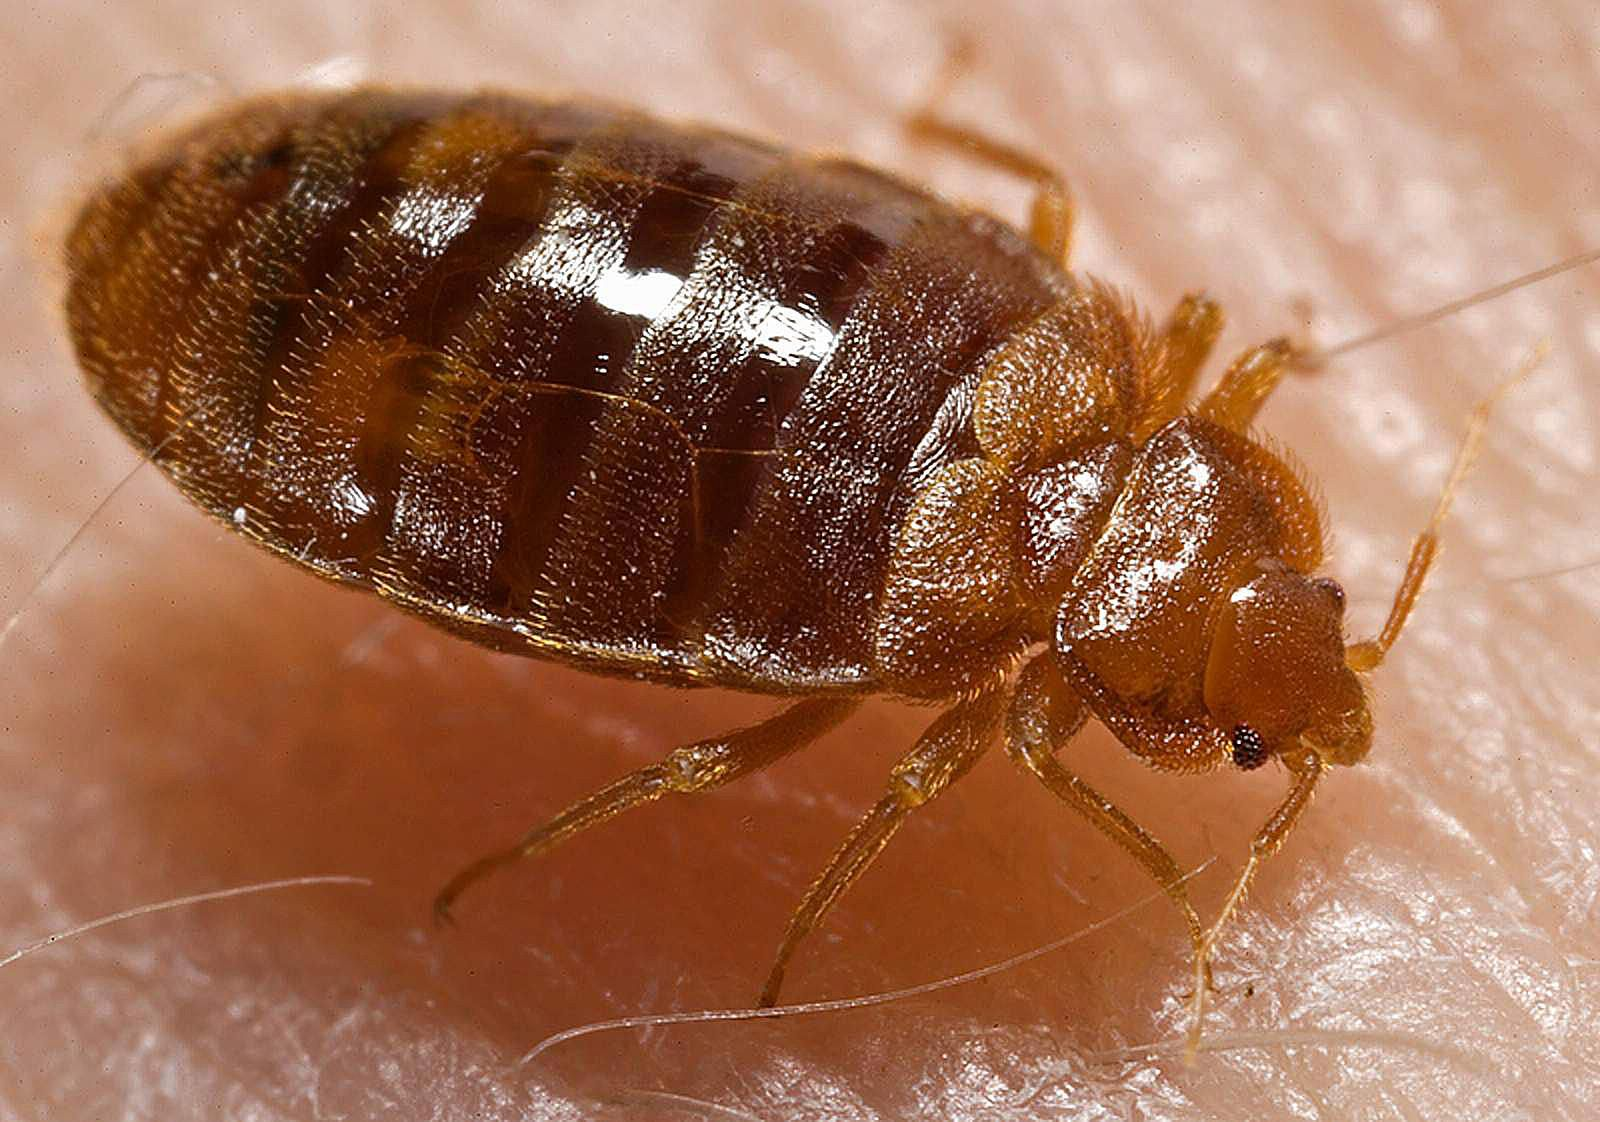 What do bed bugs look like k9 bug detectors - Interesting Facts About Bedbug Laws